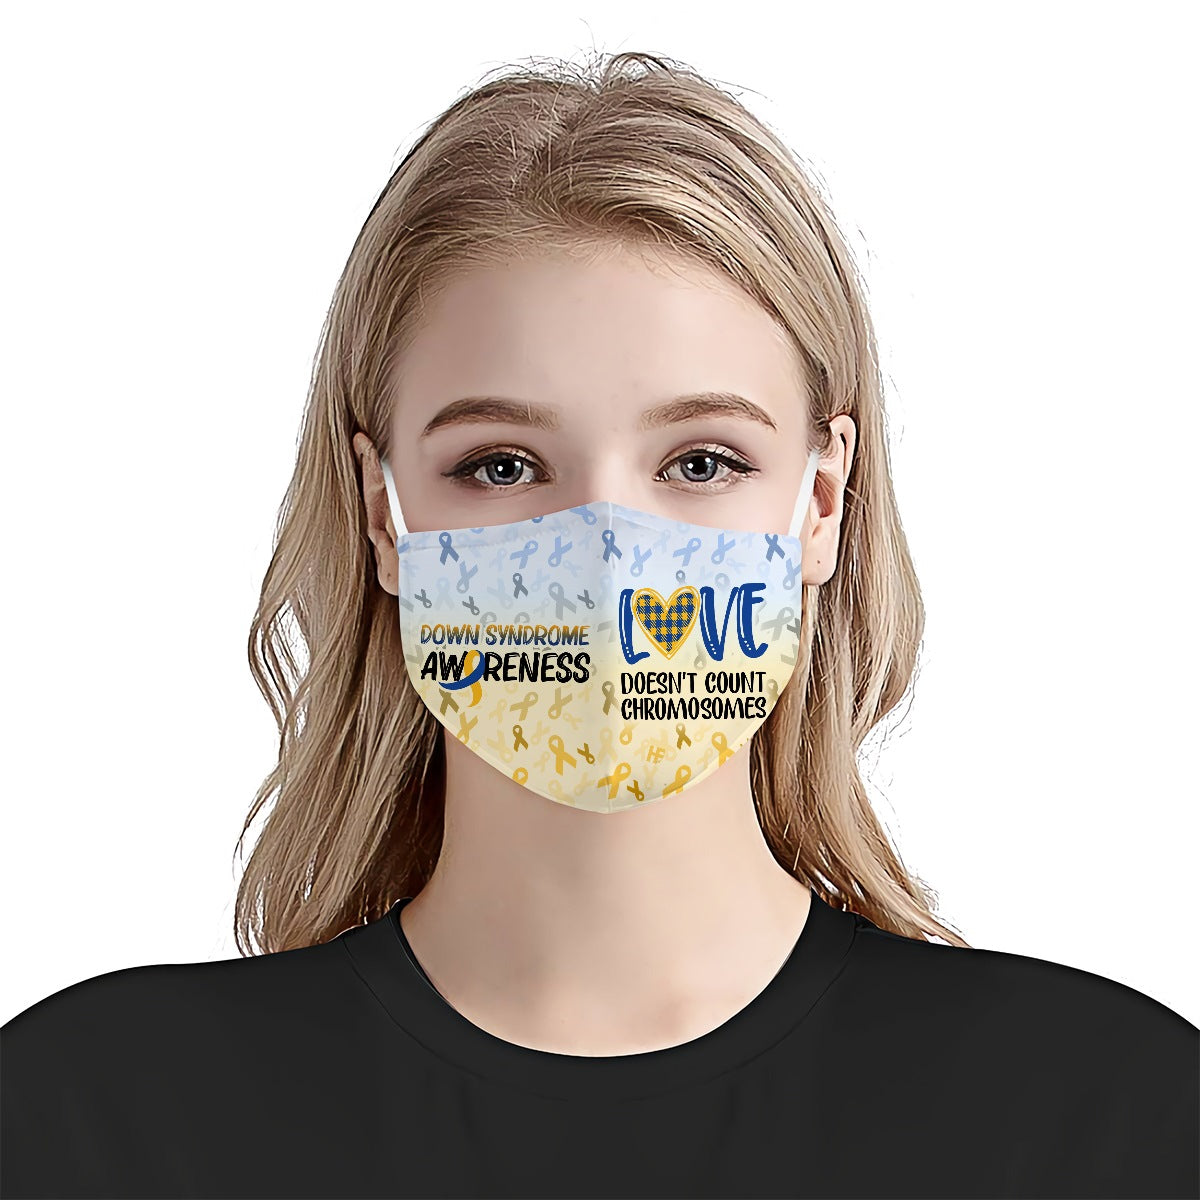 Love Doesn't count Chromosomes Down Syndrome Awareness EZ06 2204 Face Mask - Hyperfavor